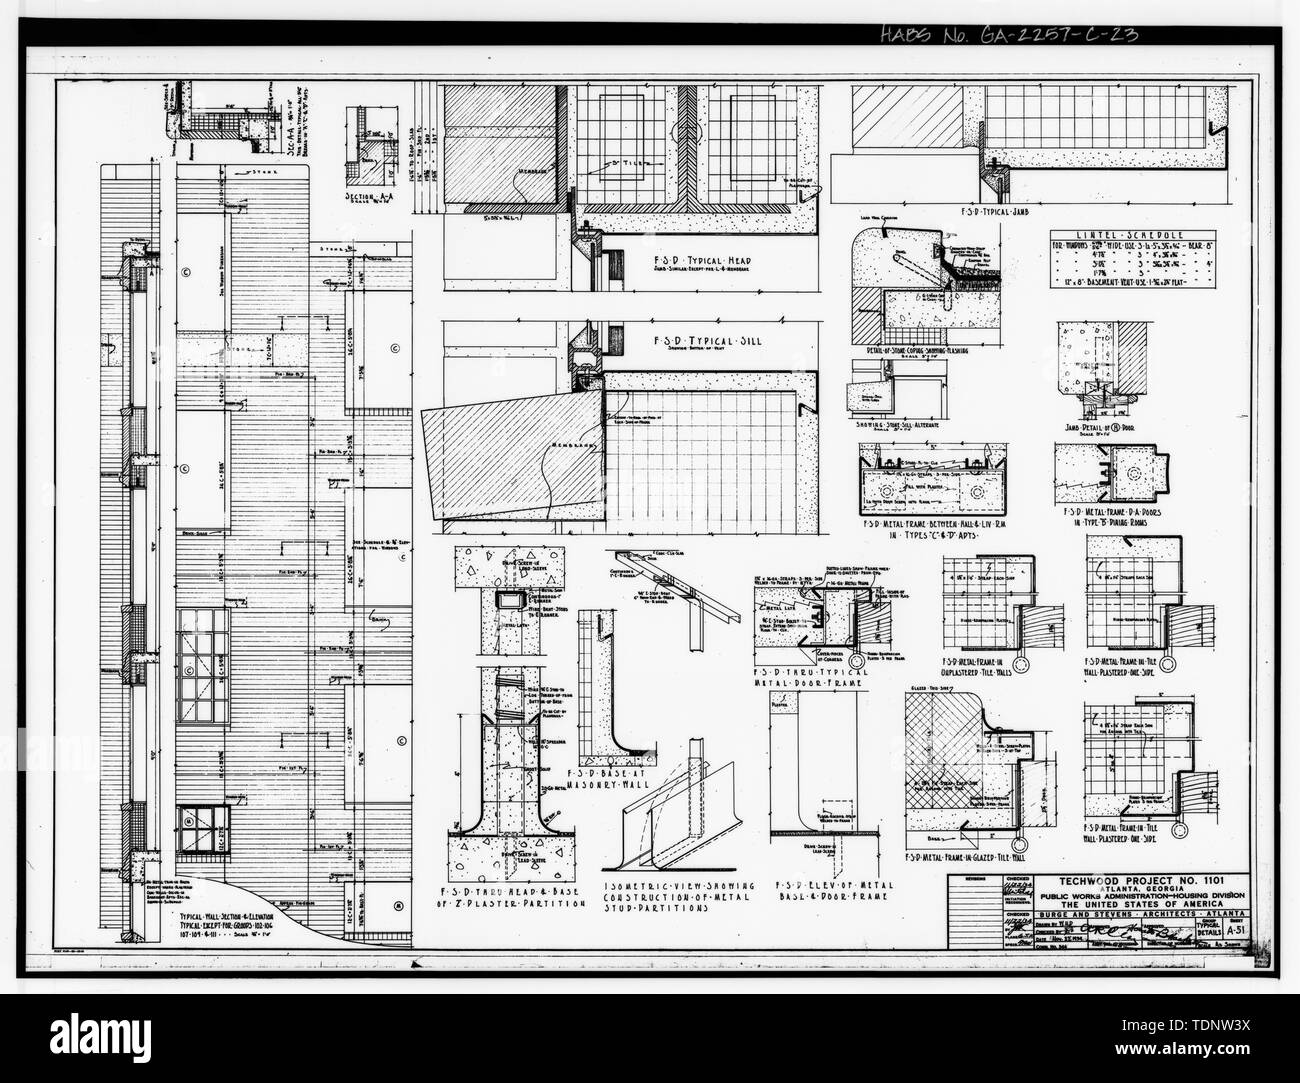 Photocopy of Drawing (November 1934 Architectural Drawings by Burge and Stevens, in Possession of the Engineering and Capital Improvements Department of the Atlanta Housing Authority, Atlanta, Georgia). TYPICAL WALL SECTION AND ELEVATION, TYPICAL DETAILS OF HEAD, SILL, BASE, JAMB, AND METAL DOOR FRAMES, DETAIL OF STONE COPING, AND STONE SILL ALTERNATE, LINTEL SCHEDULE, TECHWOOD PROJECT -1101, SHEET A-51. - Techwood Homes, Building No. 1, 575-579 Techwood Drive, Atlanta, Fulton County, GA - Stock Image